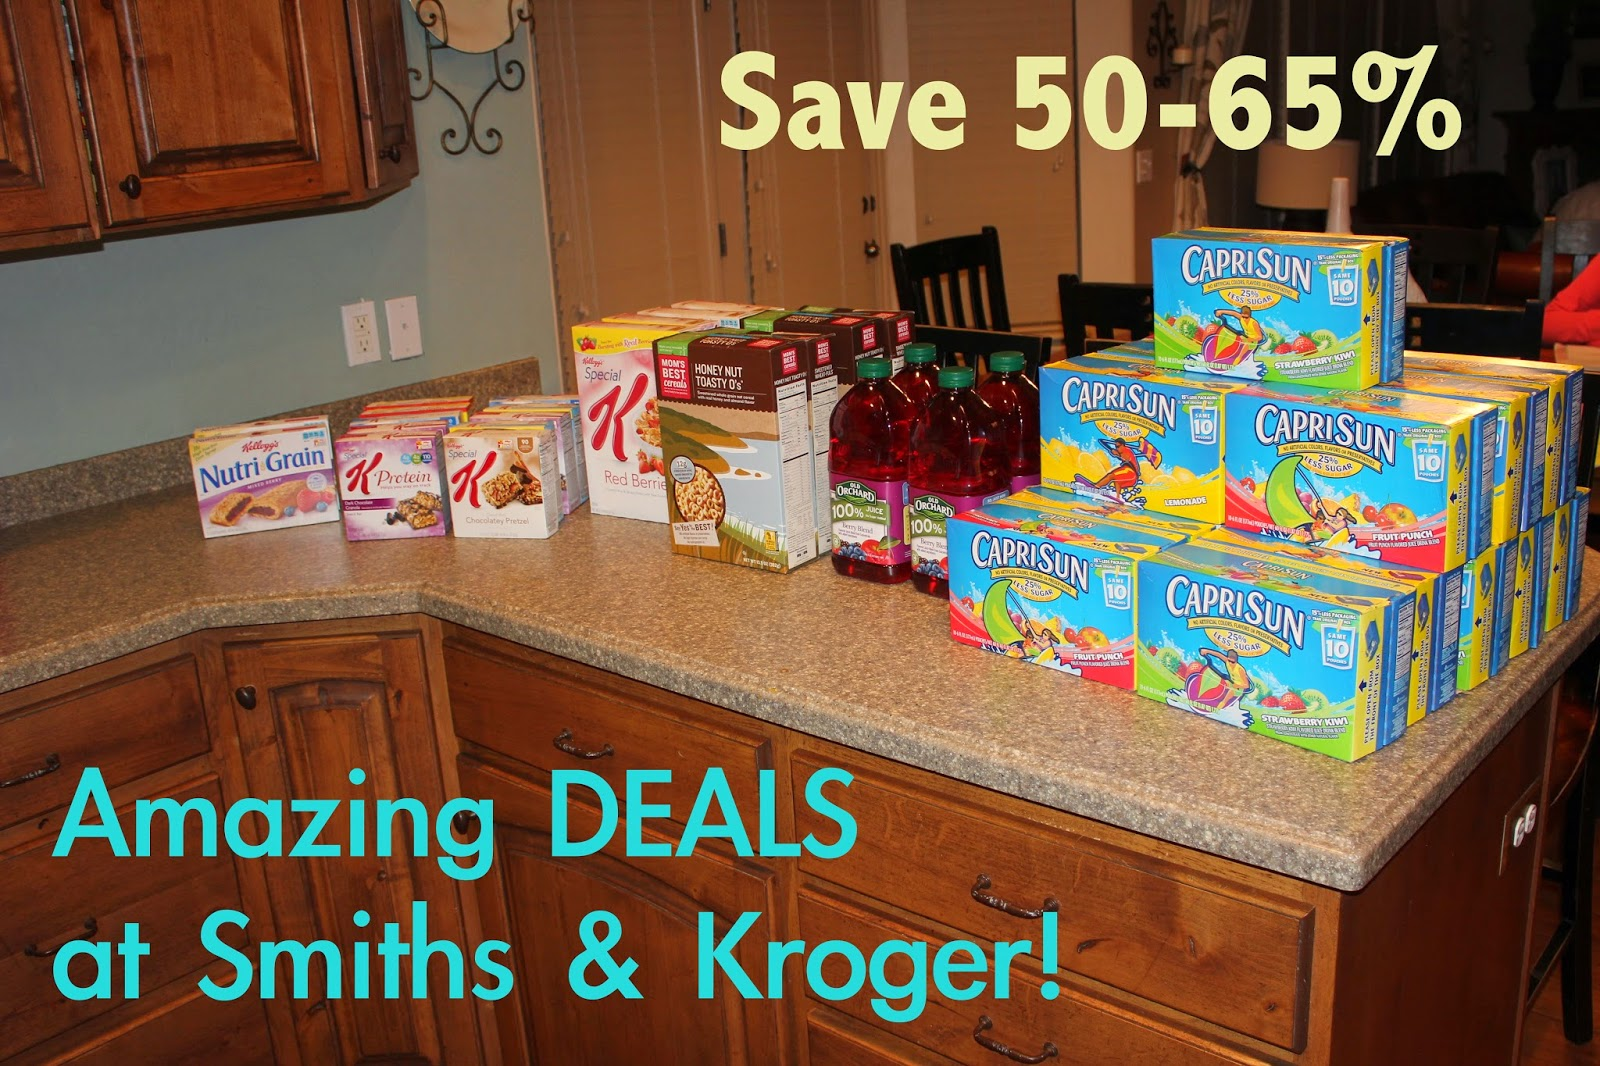 Great grocery deals at smiths and kroger this week!